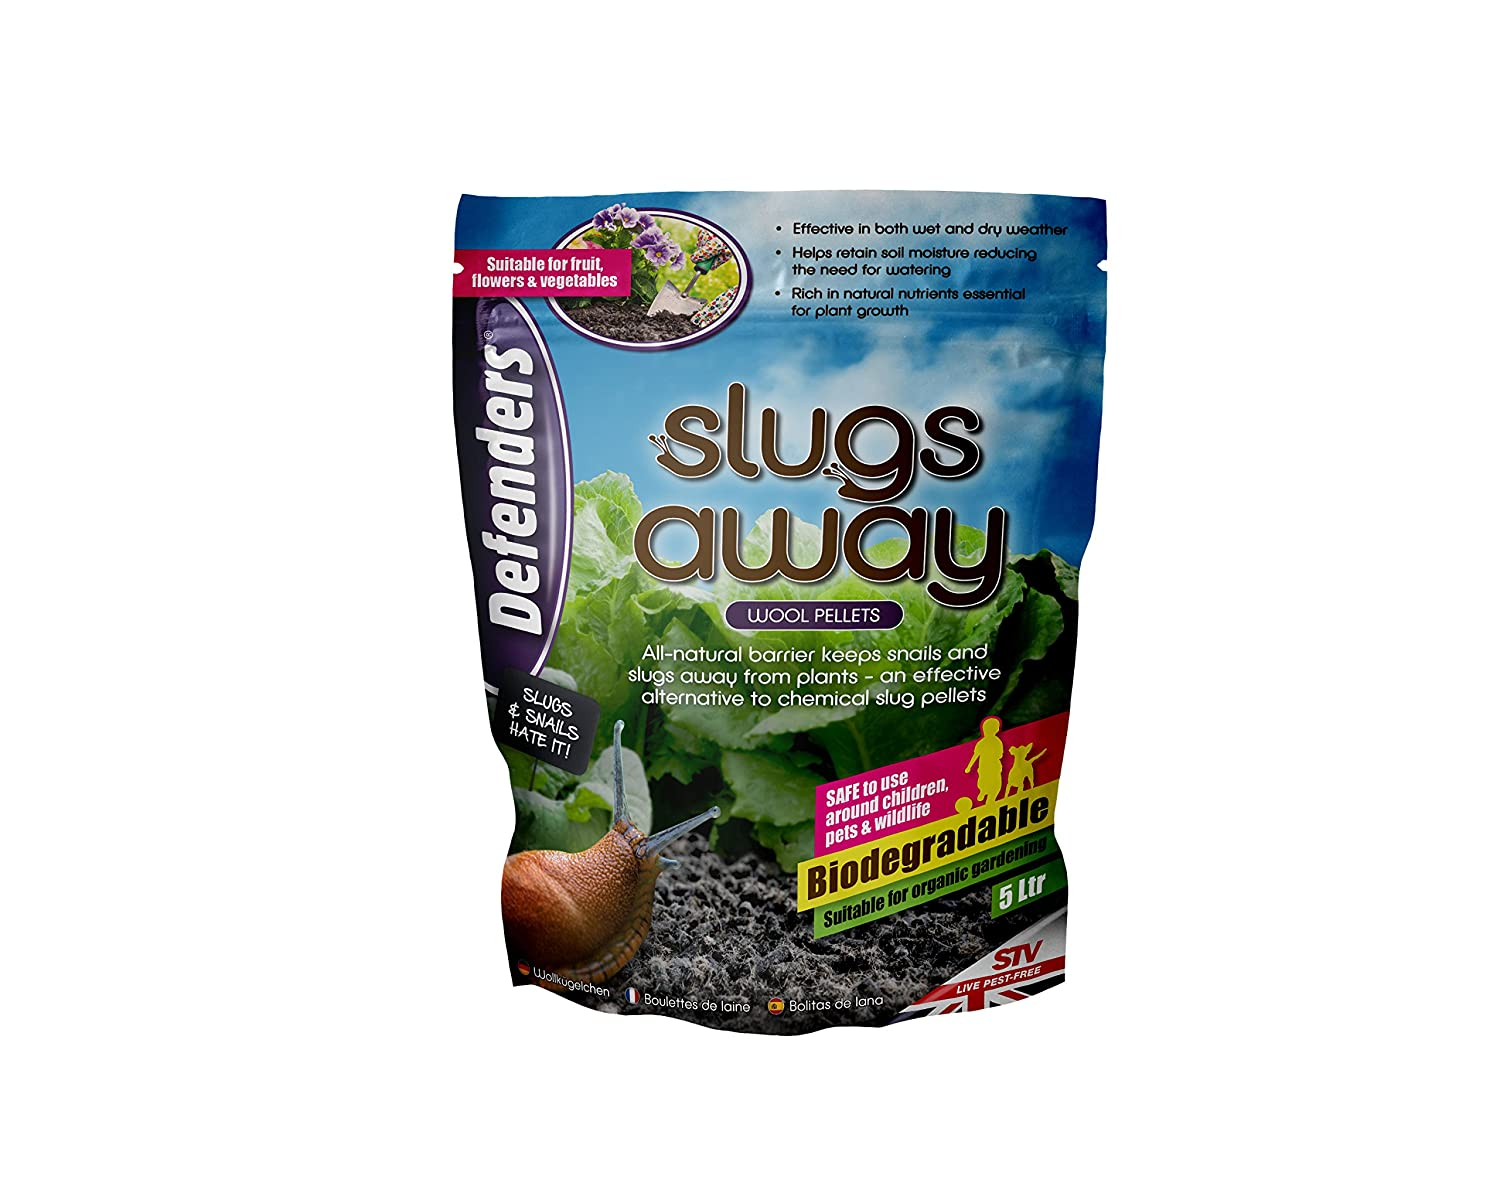 Defenders Slugs Away (Wool Pellets, Slug Deterrent, Protect Gardens and Plants), 5 Litres, Blue STV International STV053